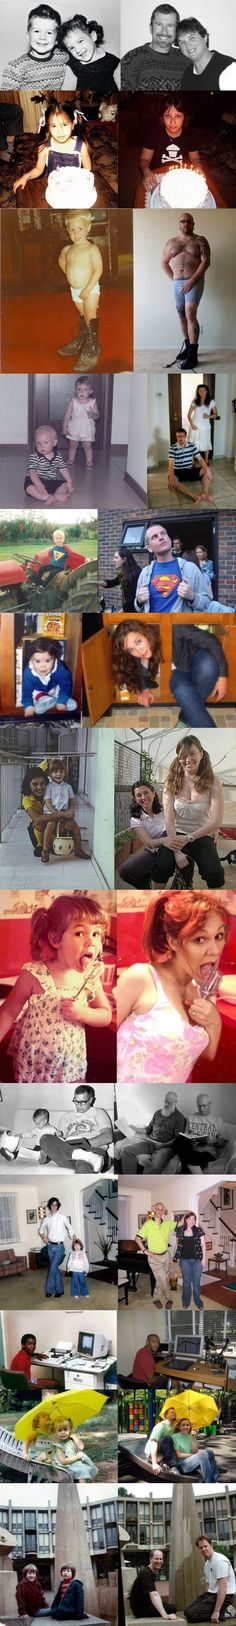 Recreating pictures from childhood.. funny gift for Mom and Dad. Hahaa I gotta try this!